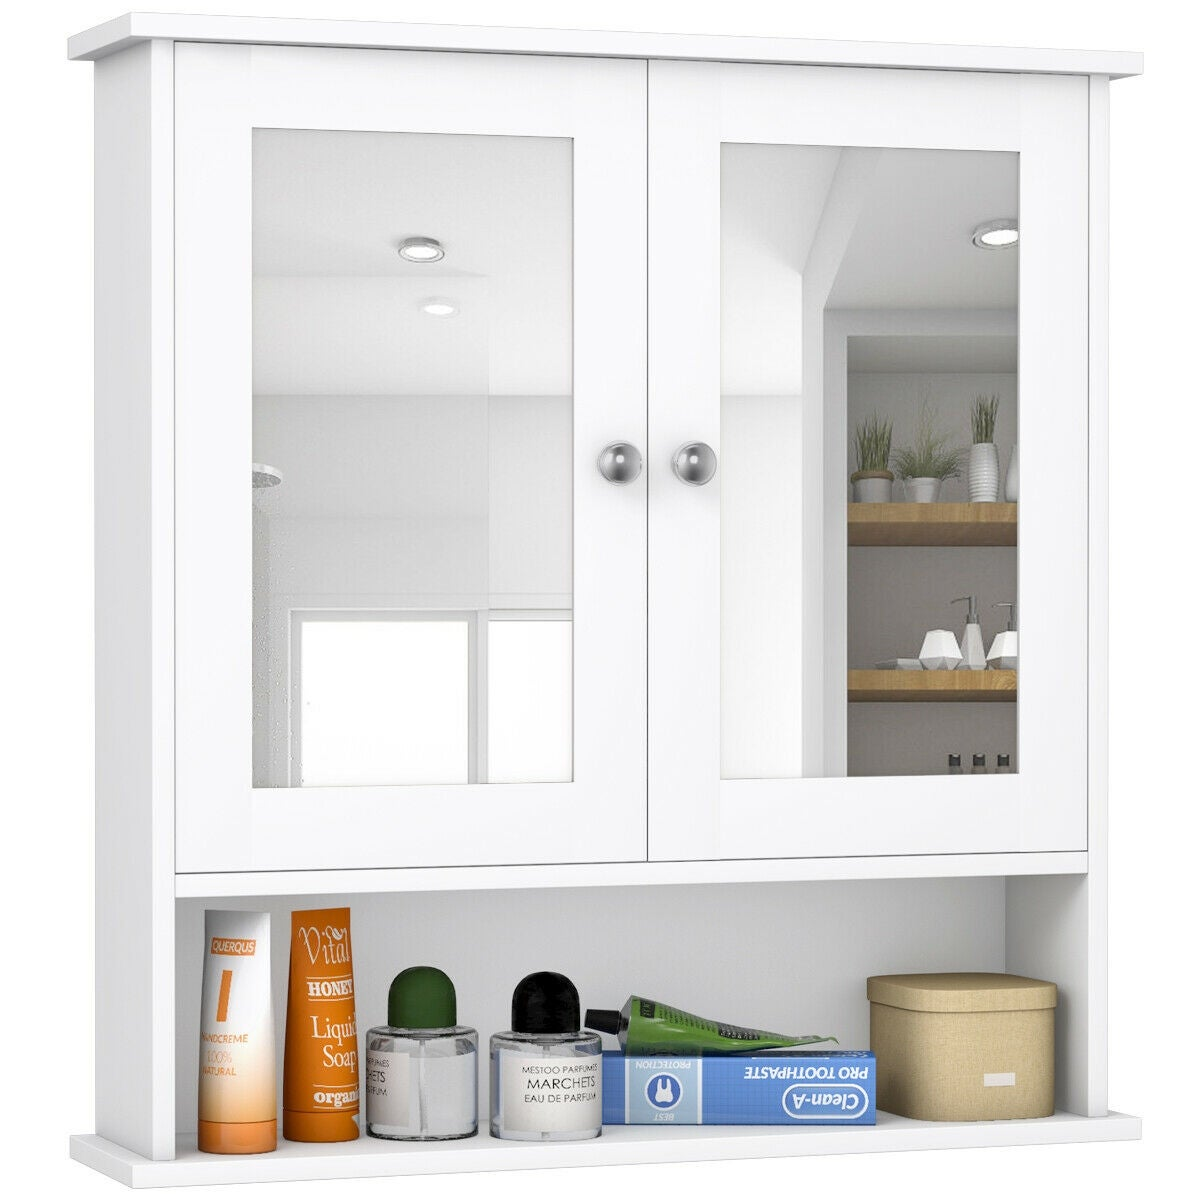 Costway New Bathroom Wall Cabinet